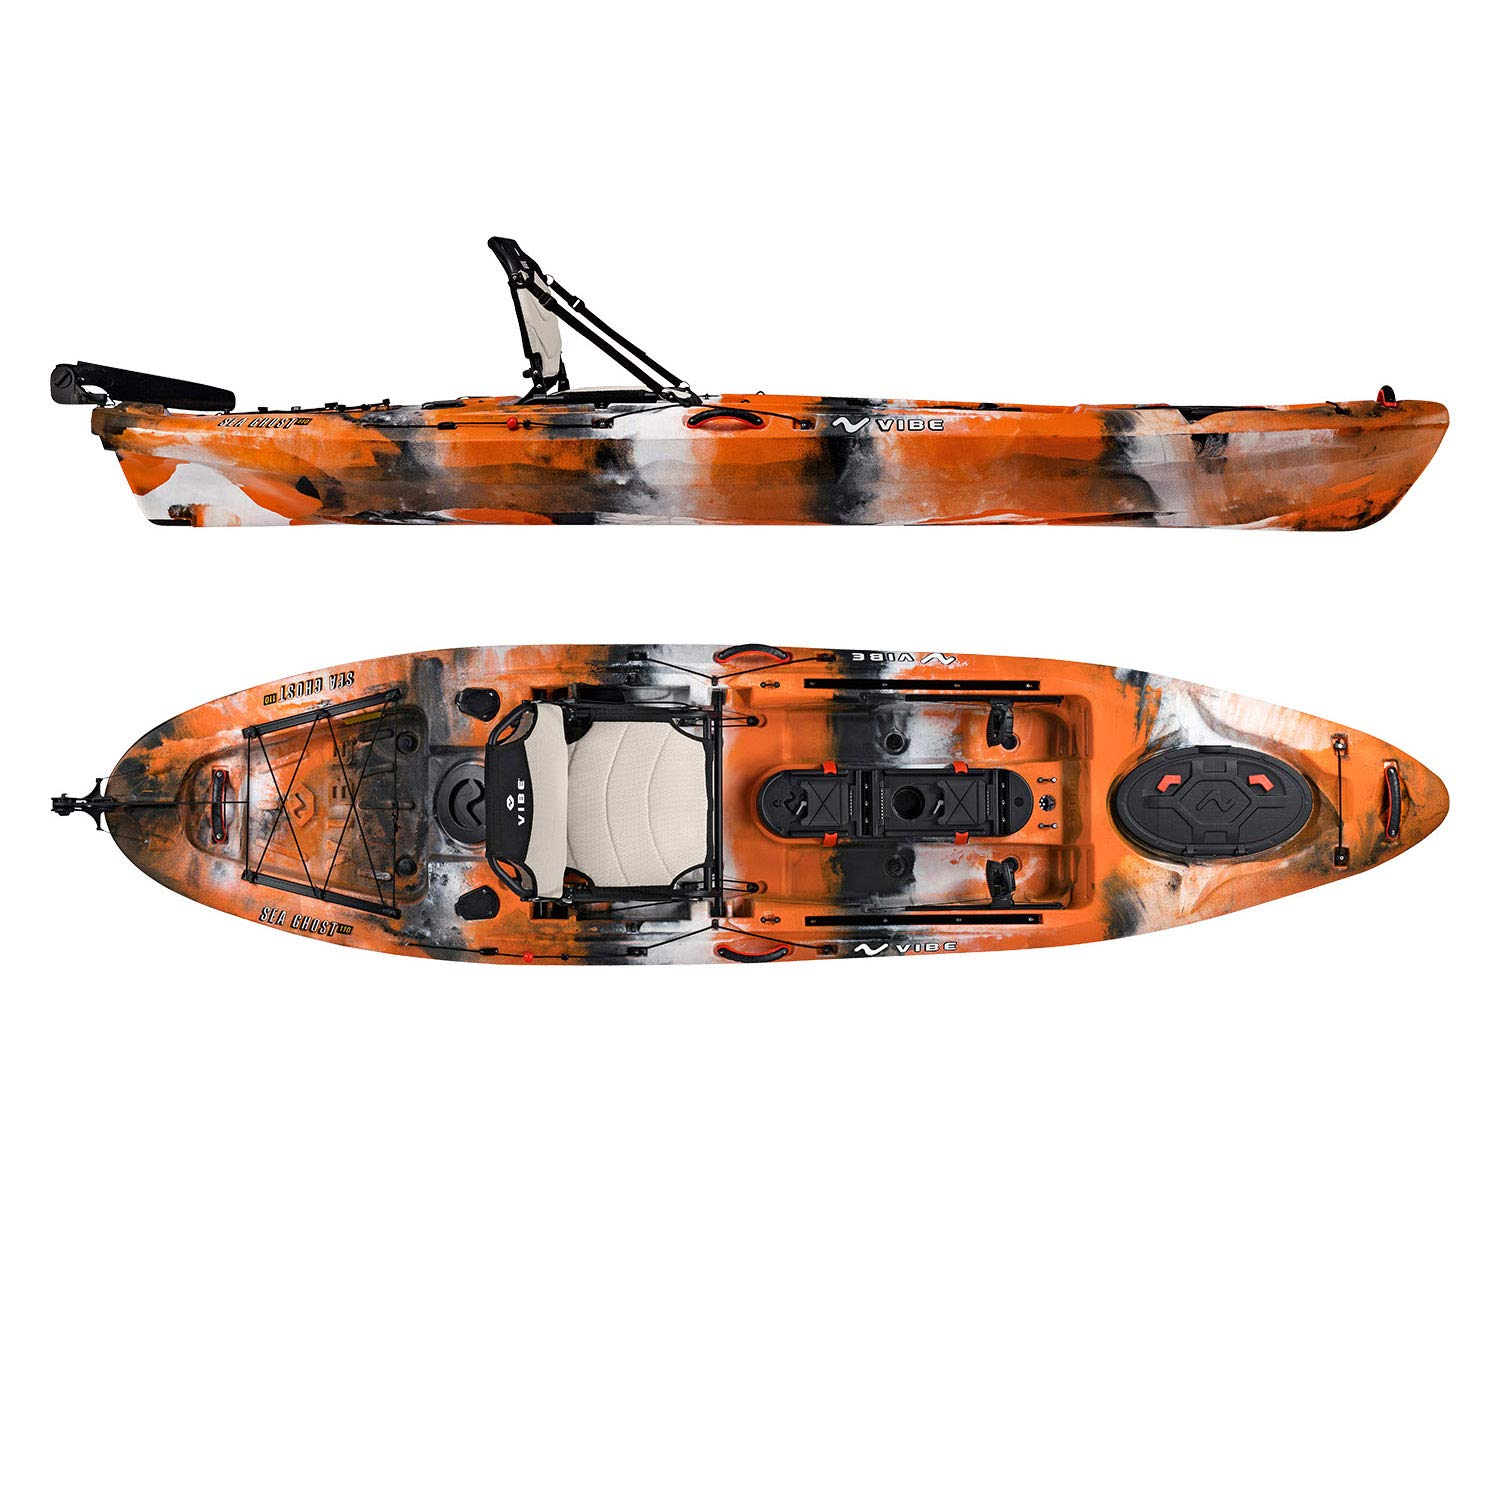 Vibe Kayaks Sea Ghost 110 11 Foot Angler Sit On Top Fishing Kayak with Adjustable Hero Comfort Seat Transducer Port Rod Holders Storage Rudder System Included